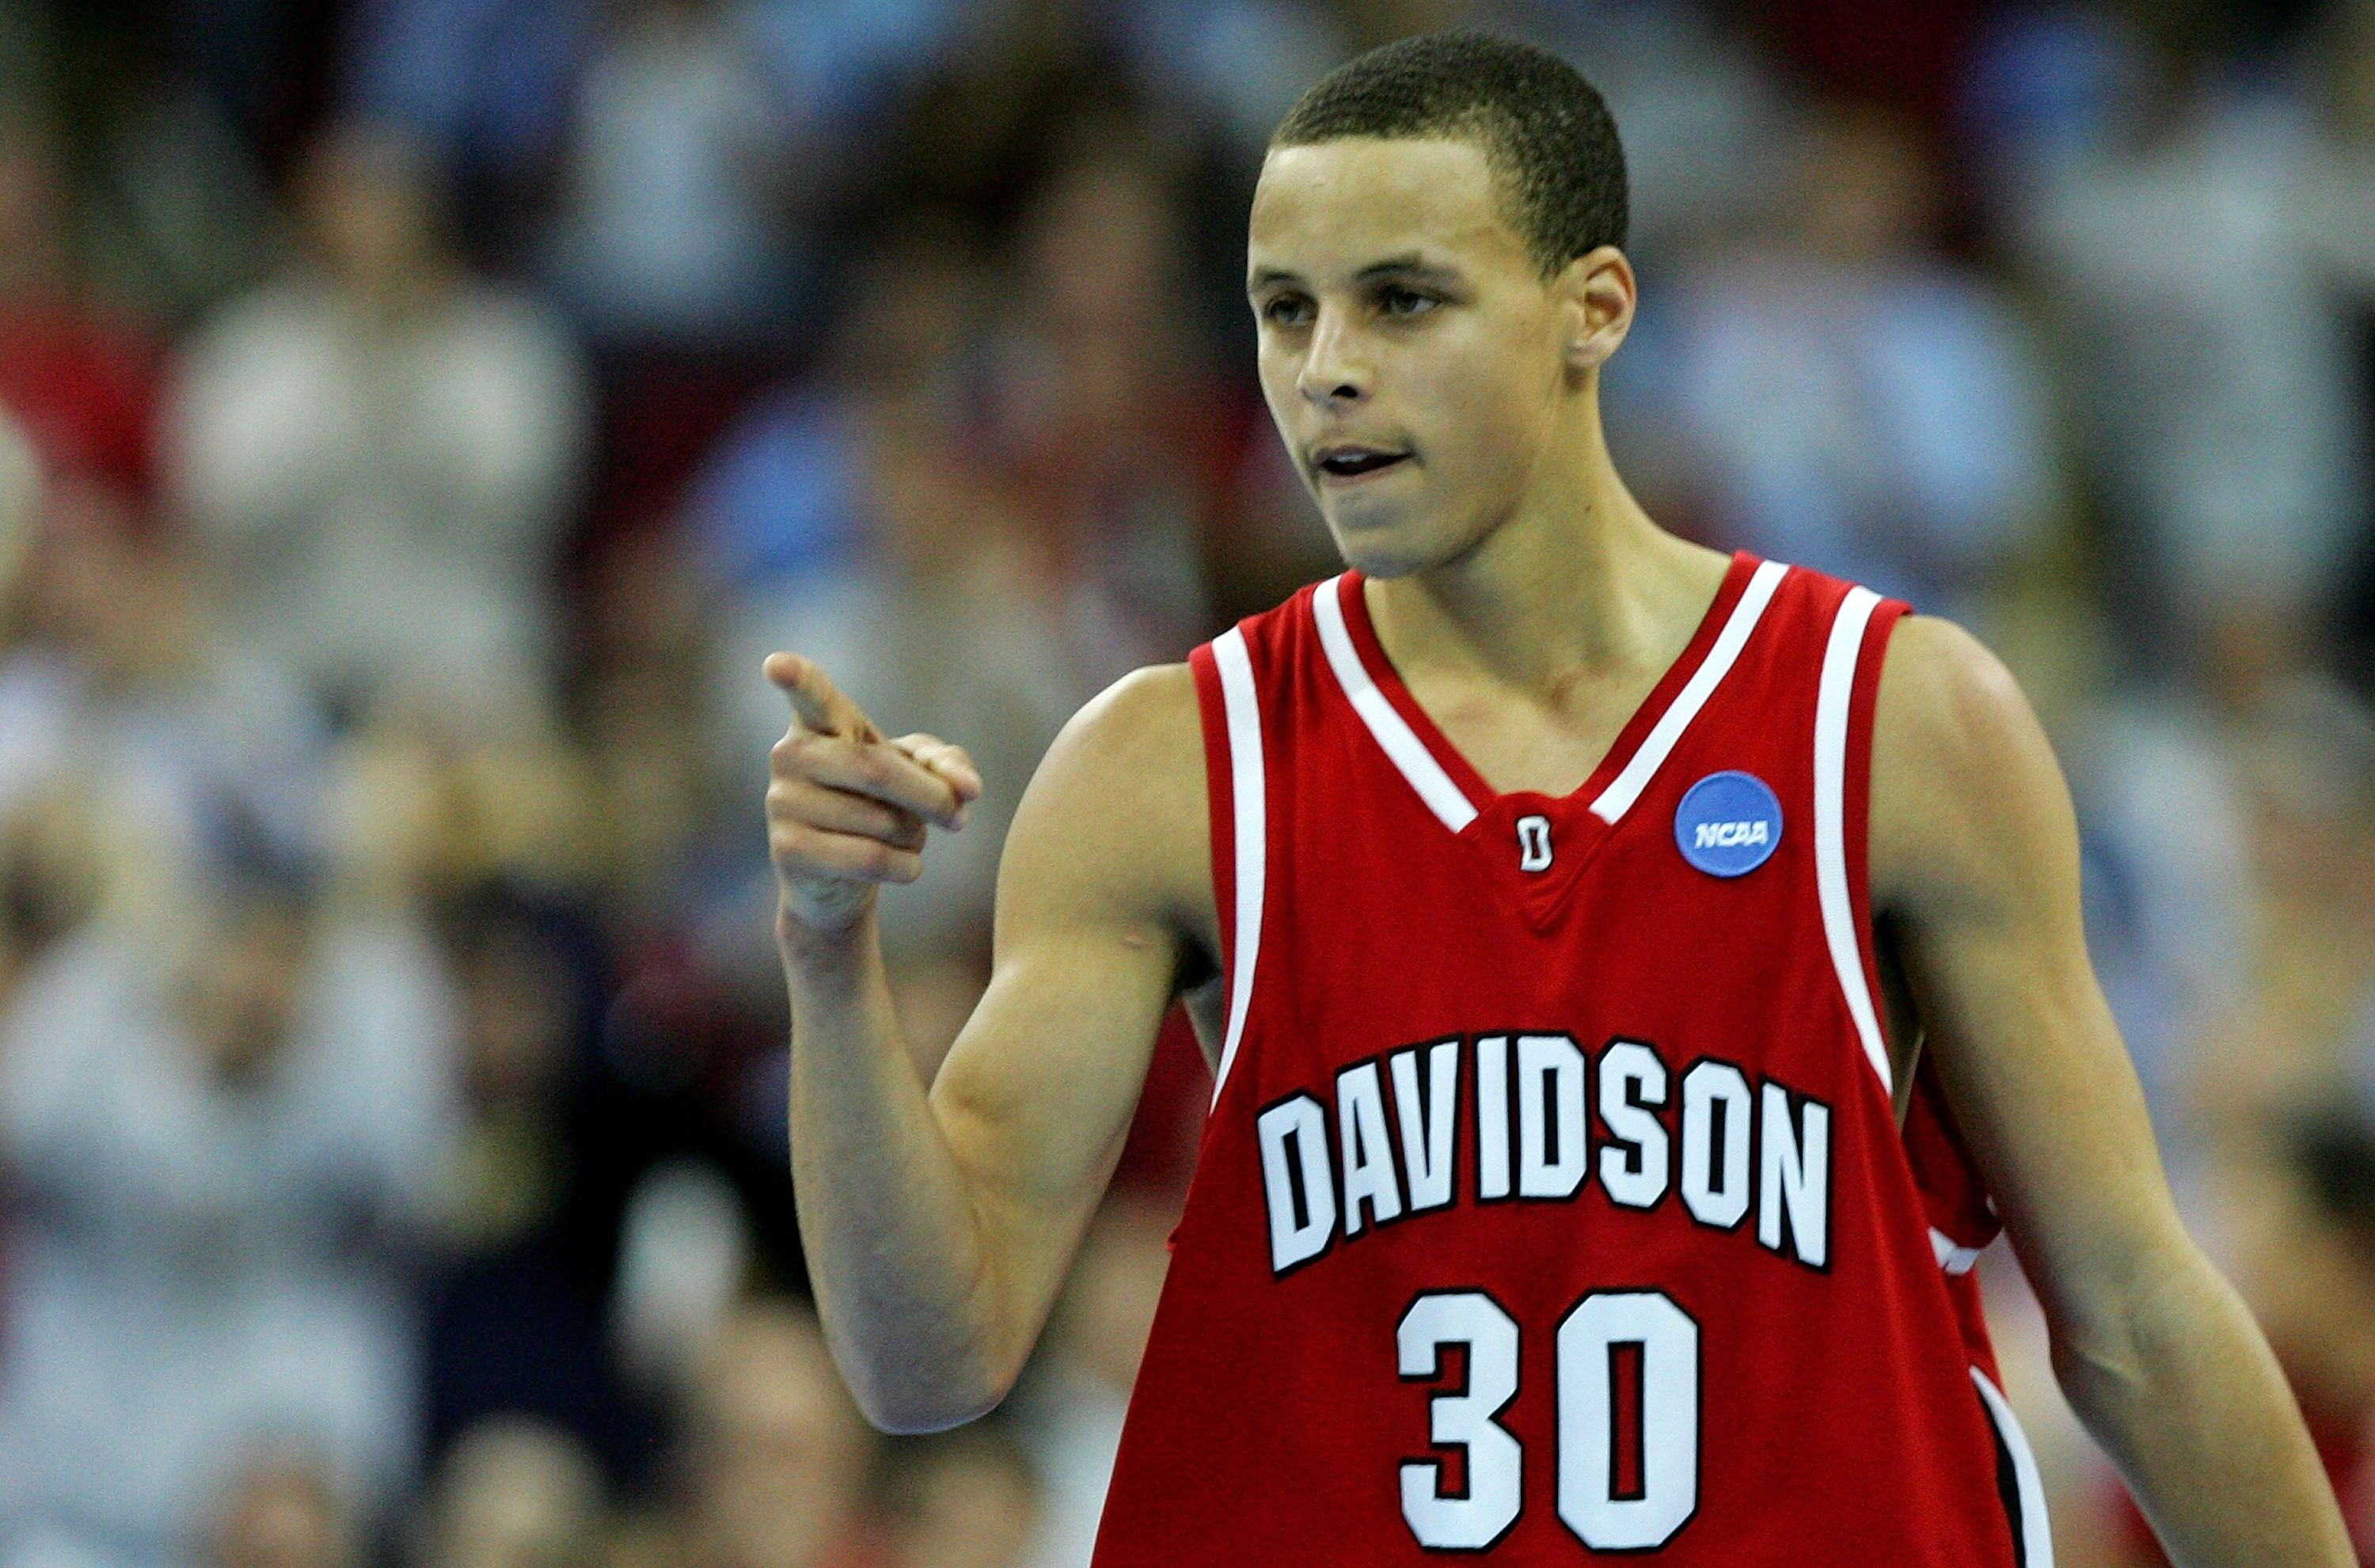 Stephen Curry is long gone, but the Davidson way survives ...